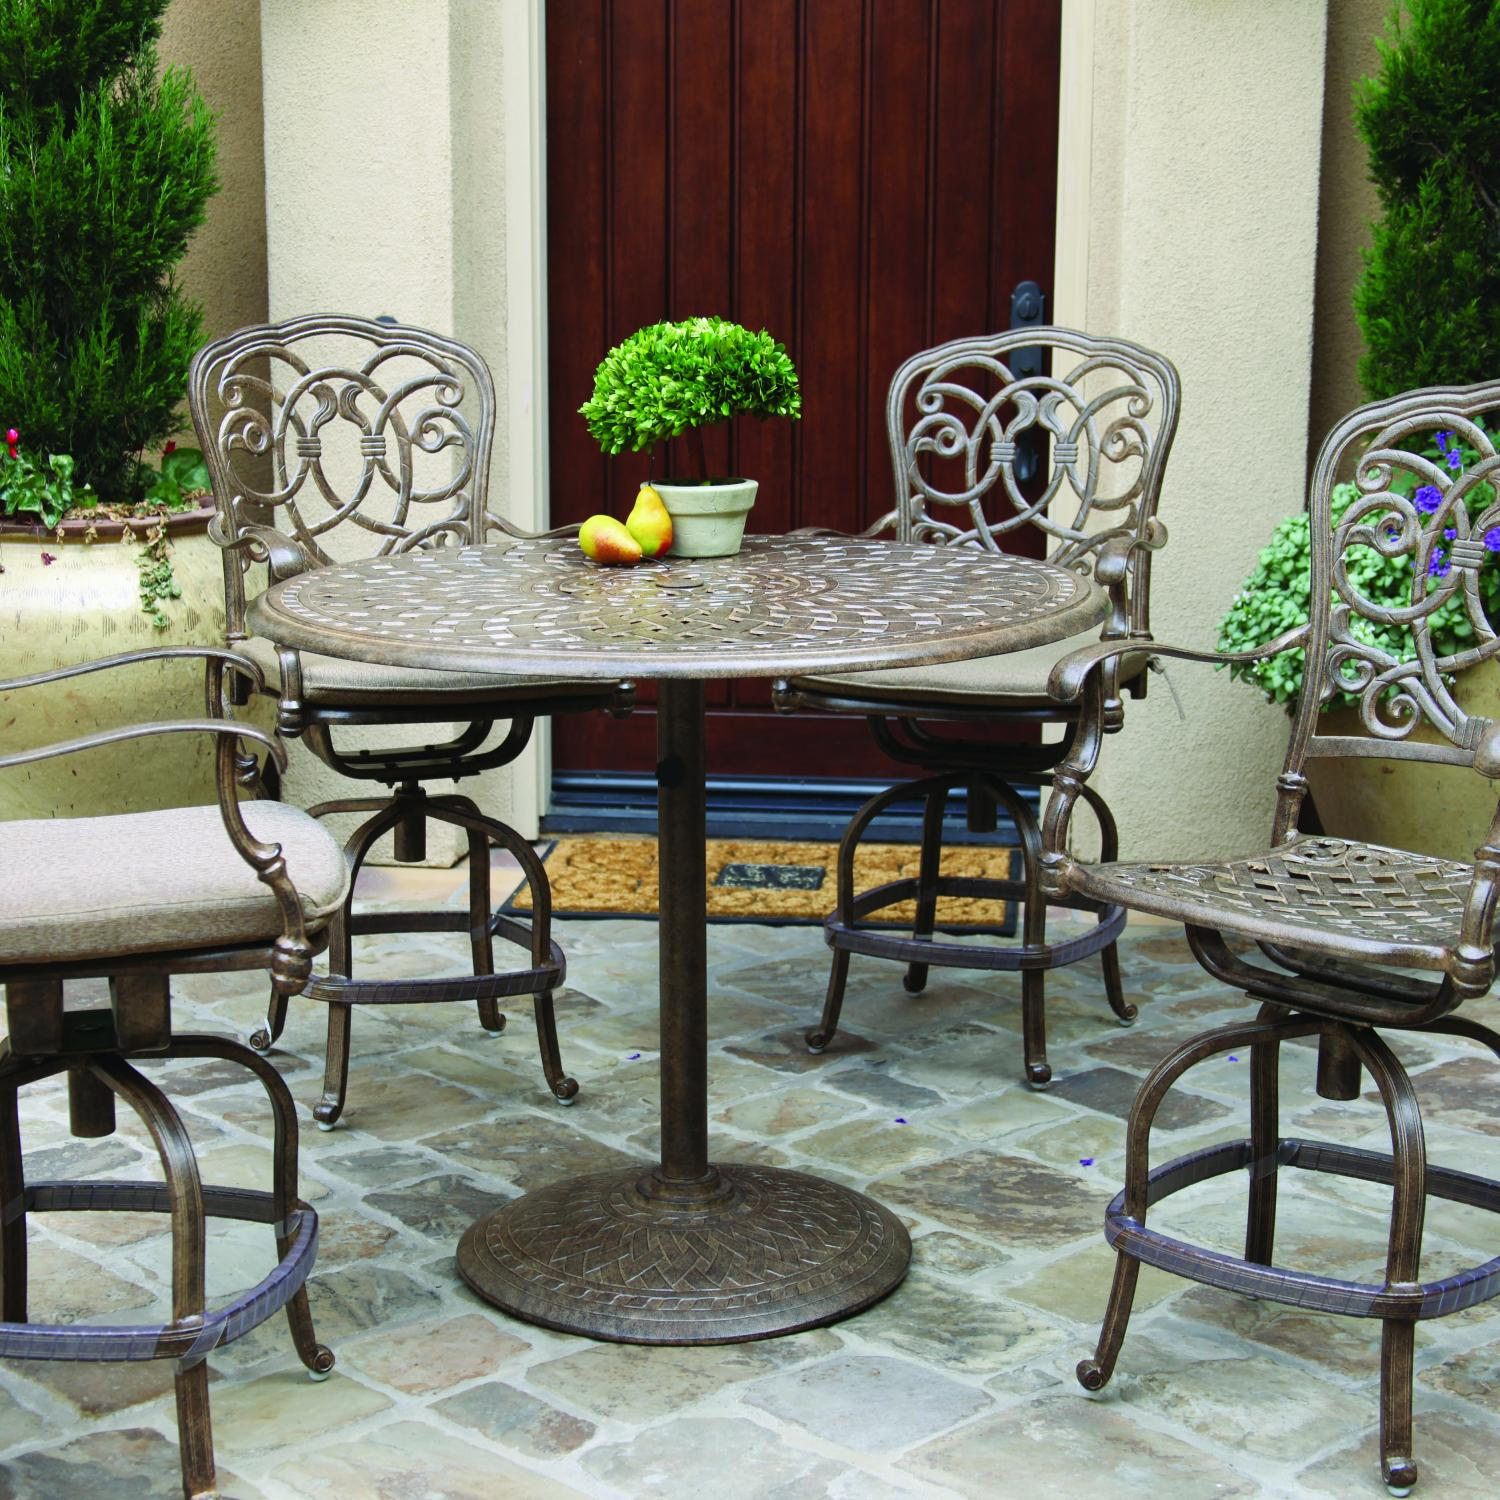 Excellent Darlee Florence 5 Piece Cast Aluminum Patio Counter Height Bar Set With Swivel Bar Stools Antique Bronze Spiritservingveterans Wood Chair Design Ideas Spiritservingveteransorg